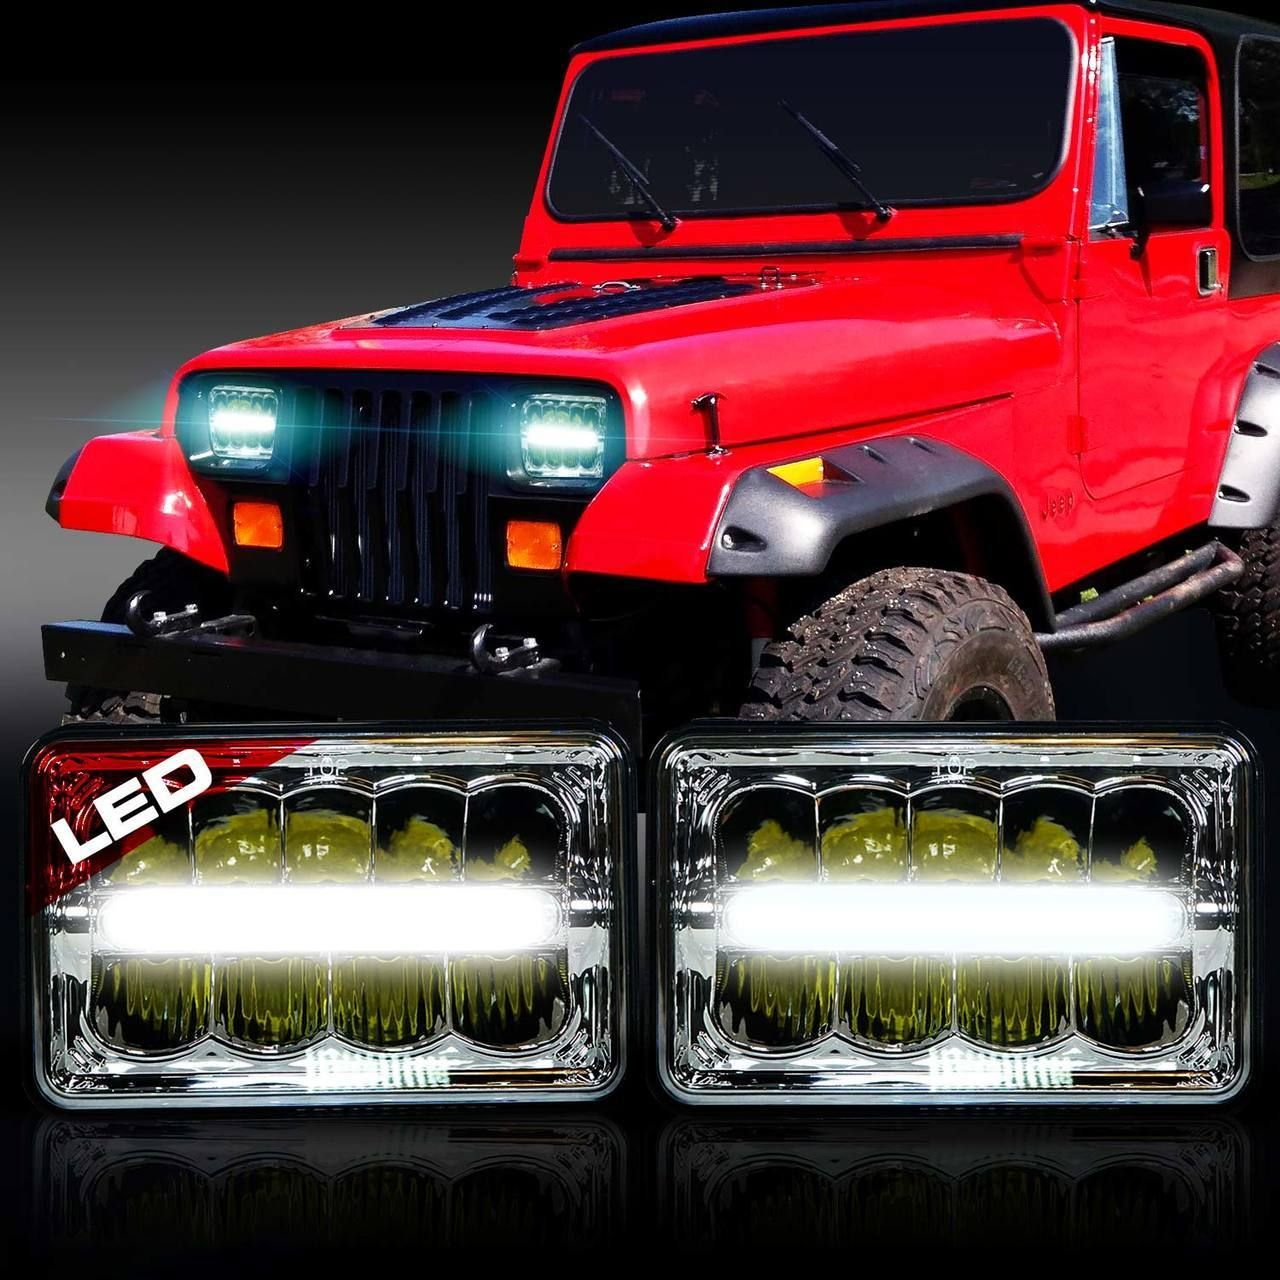 Xdr Led Chrome Headlights W Drl For Xj And Yj Jeep Wrangler Yj